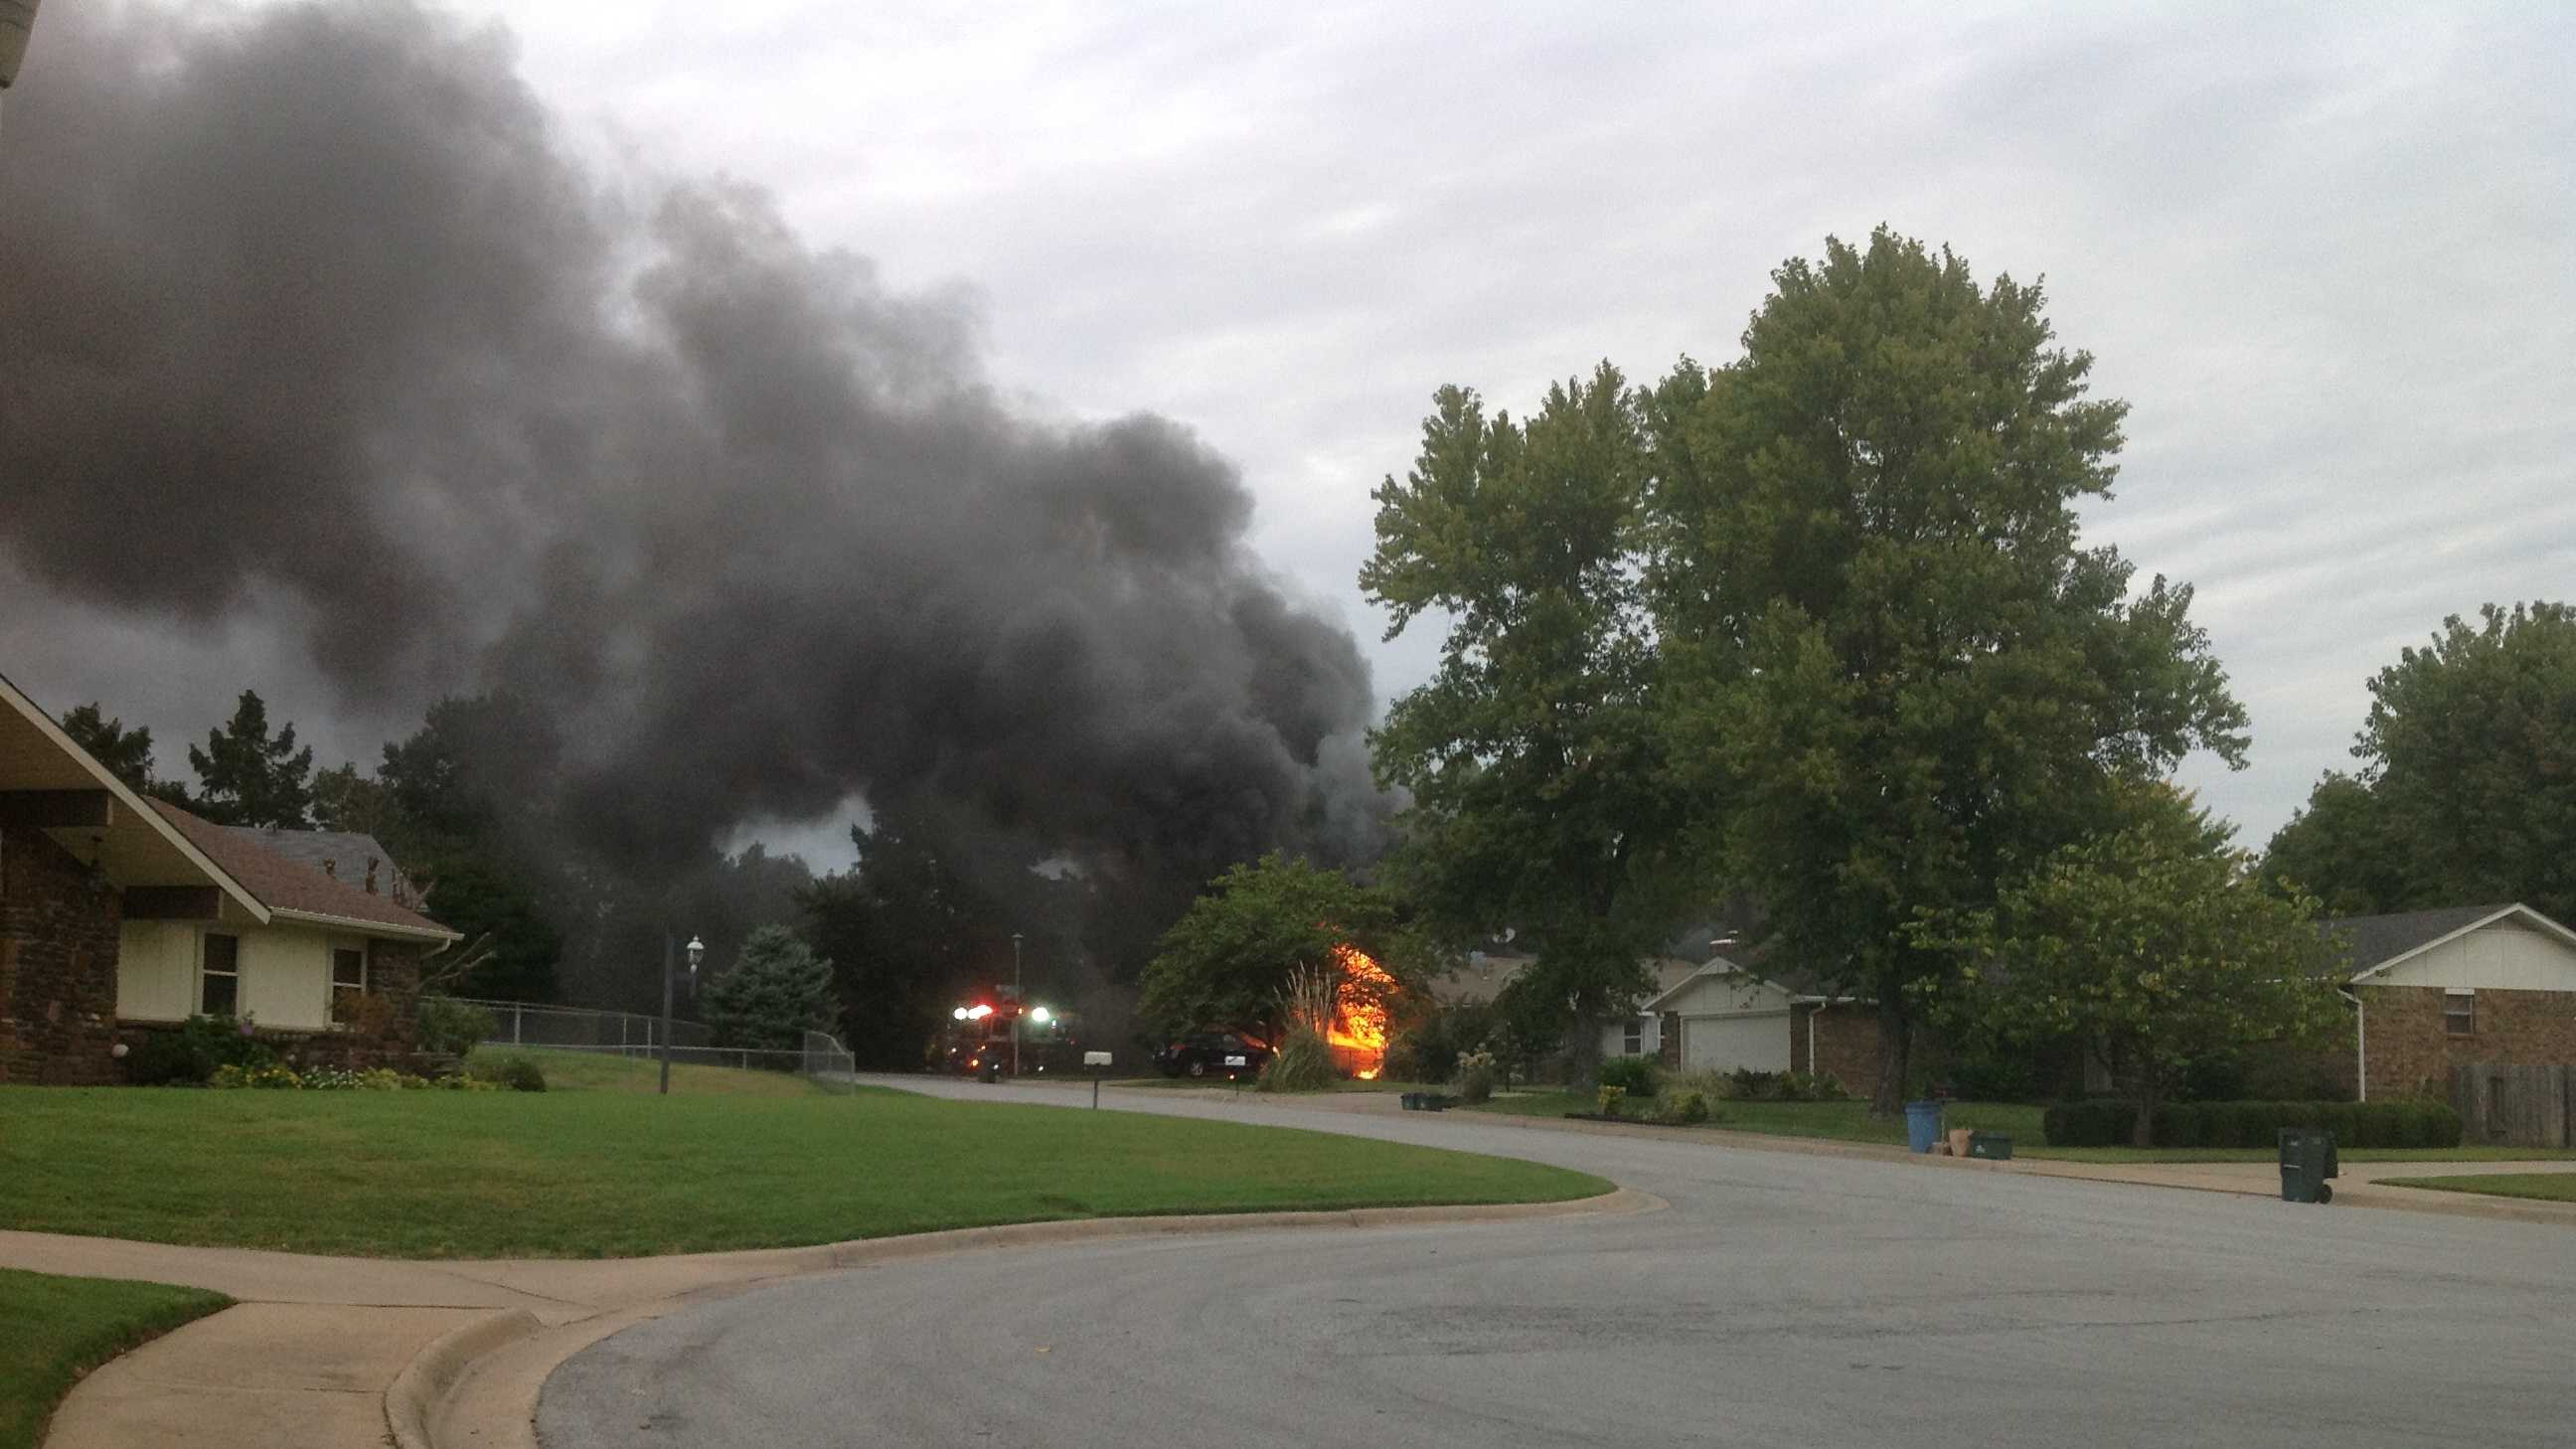 House fire strawerry fayetteville.jpeg